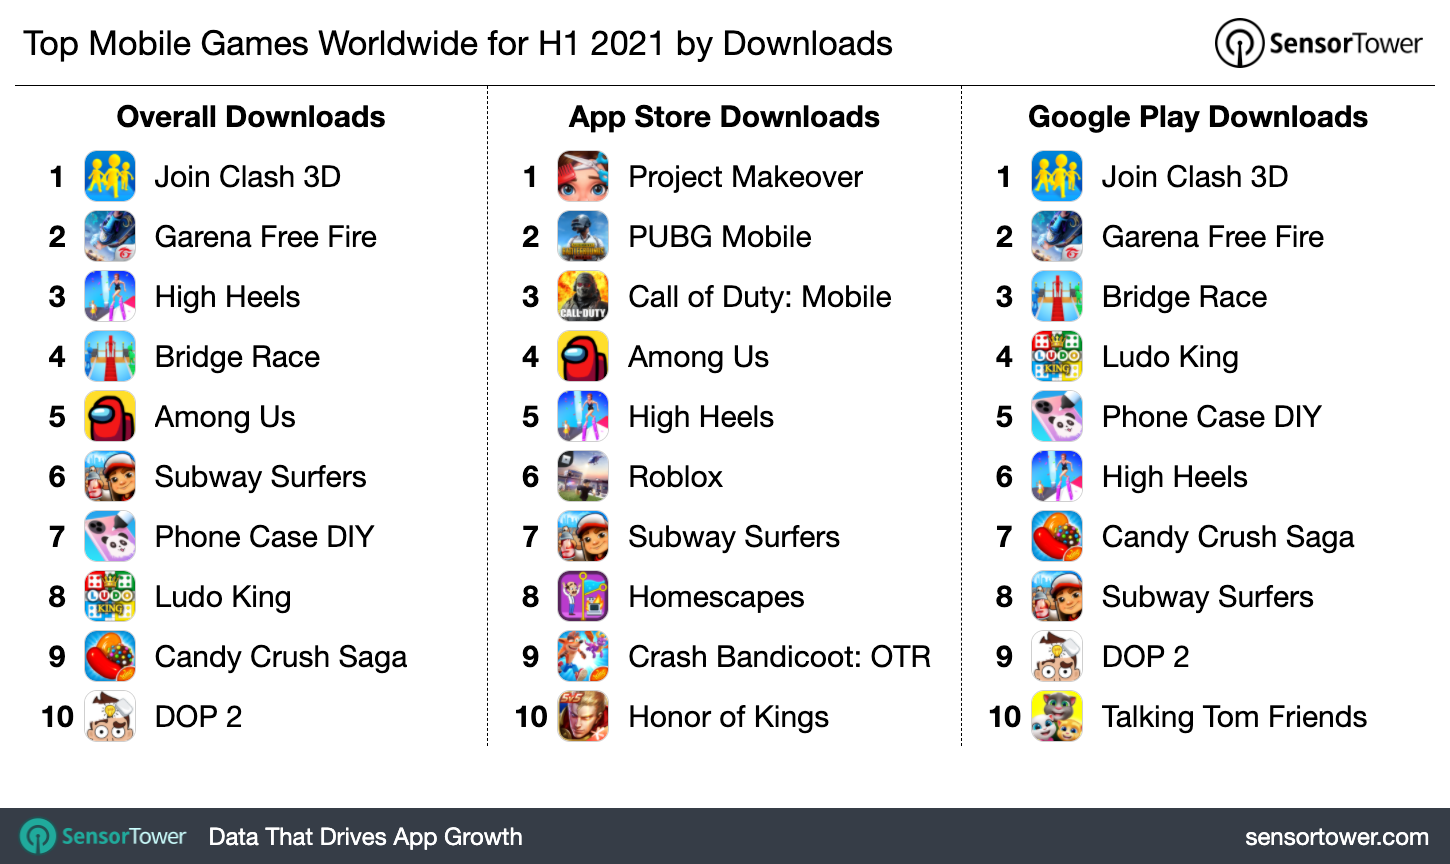 Top mobile games worldwide 2021 list